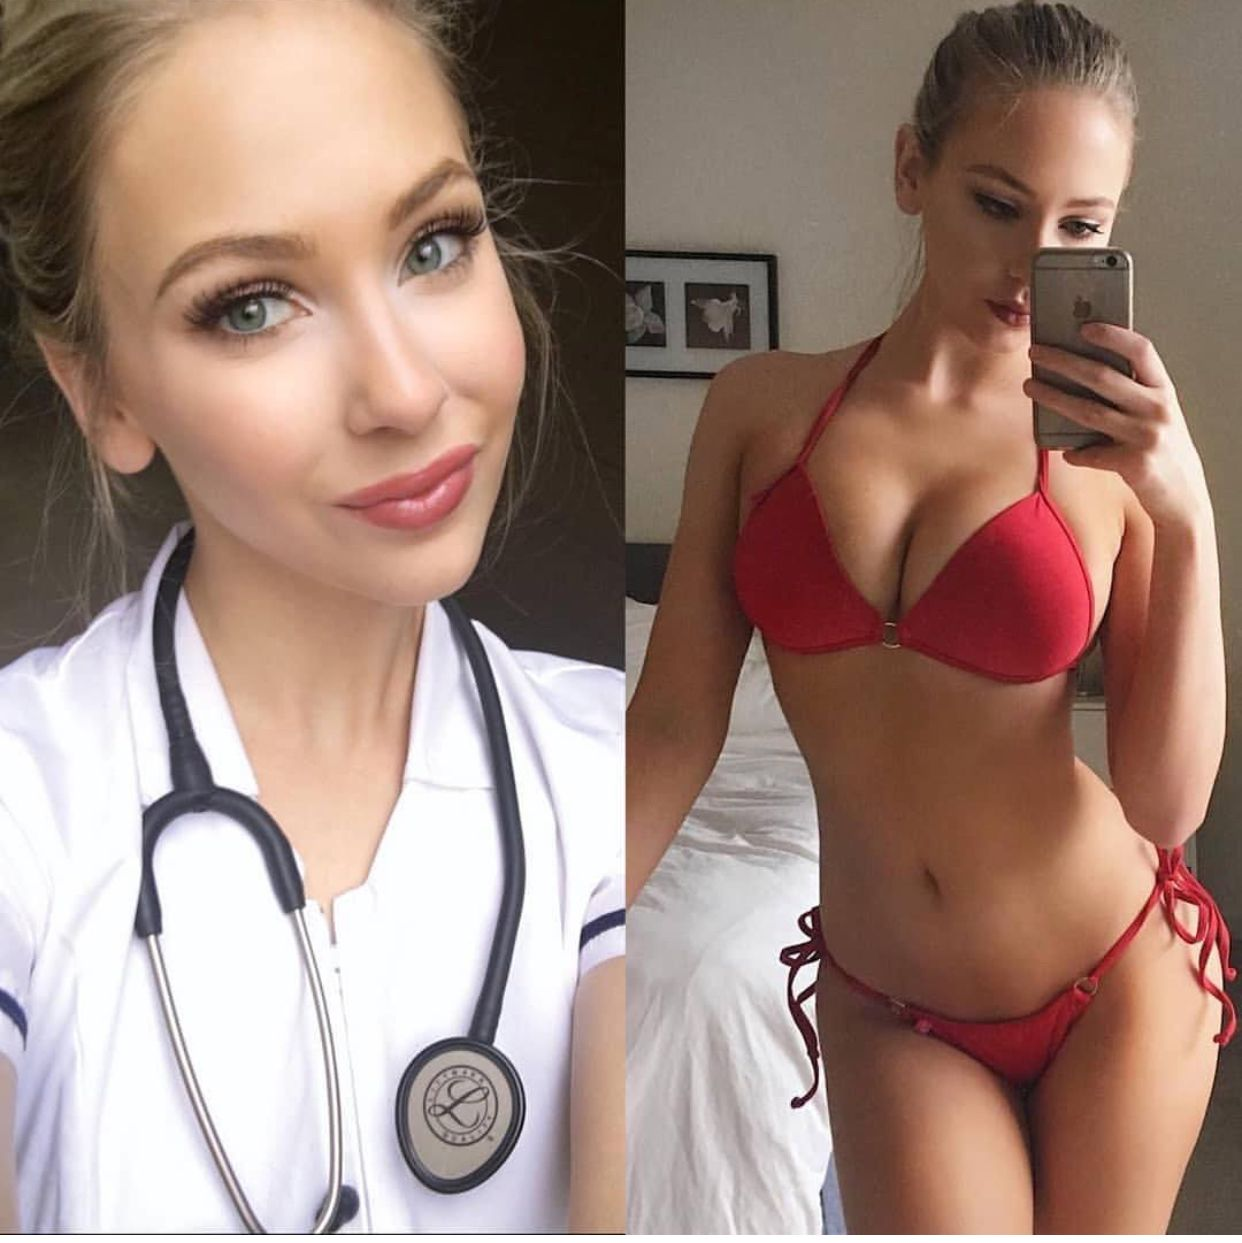 Situation familiar sexy doctor hot photos